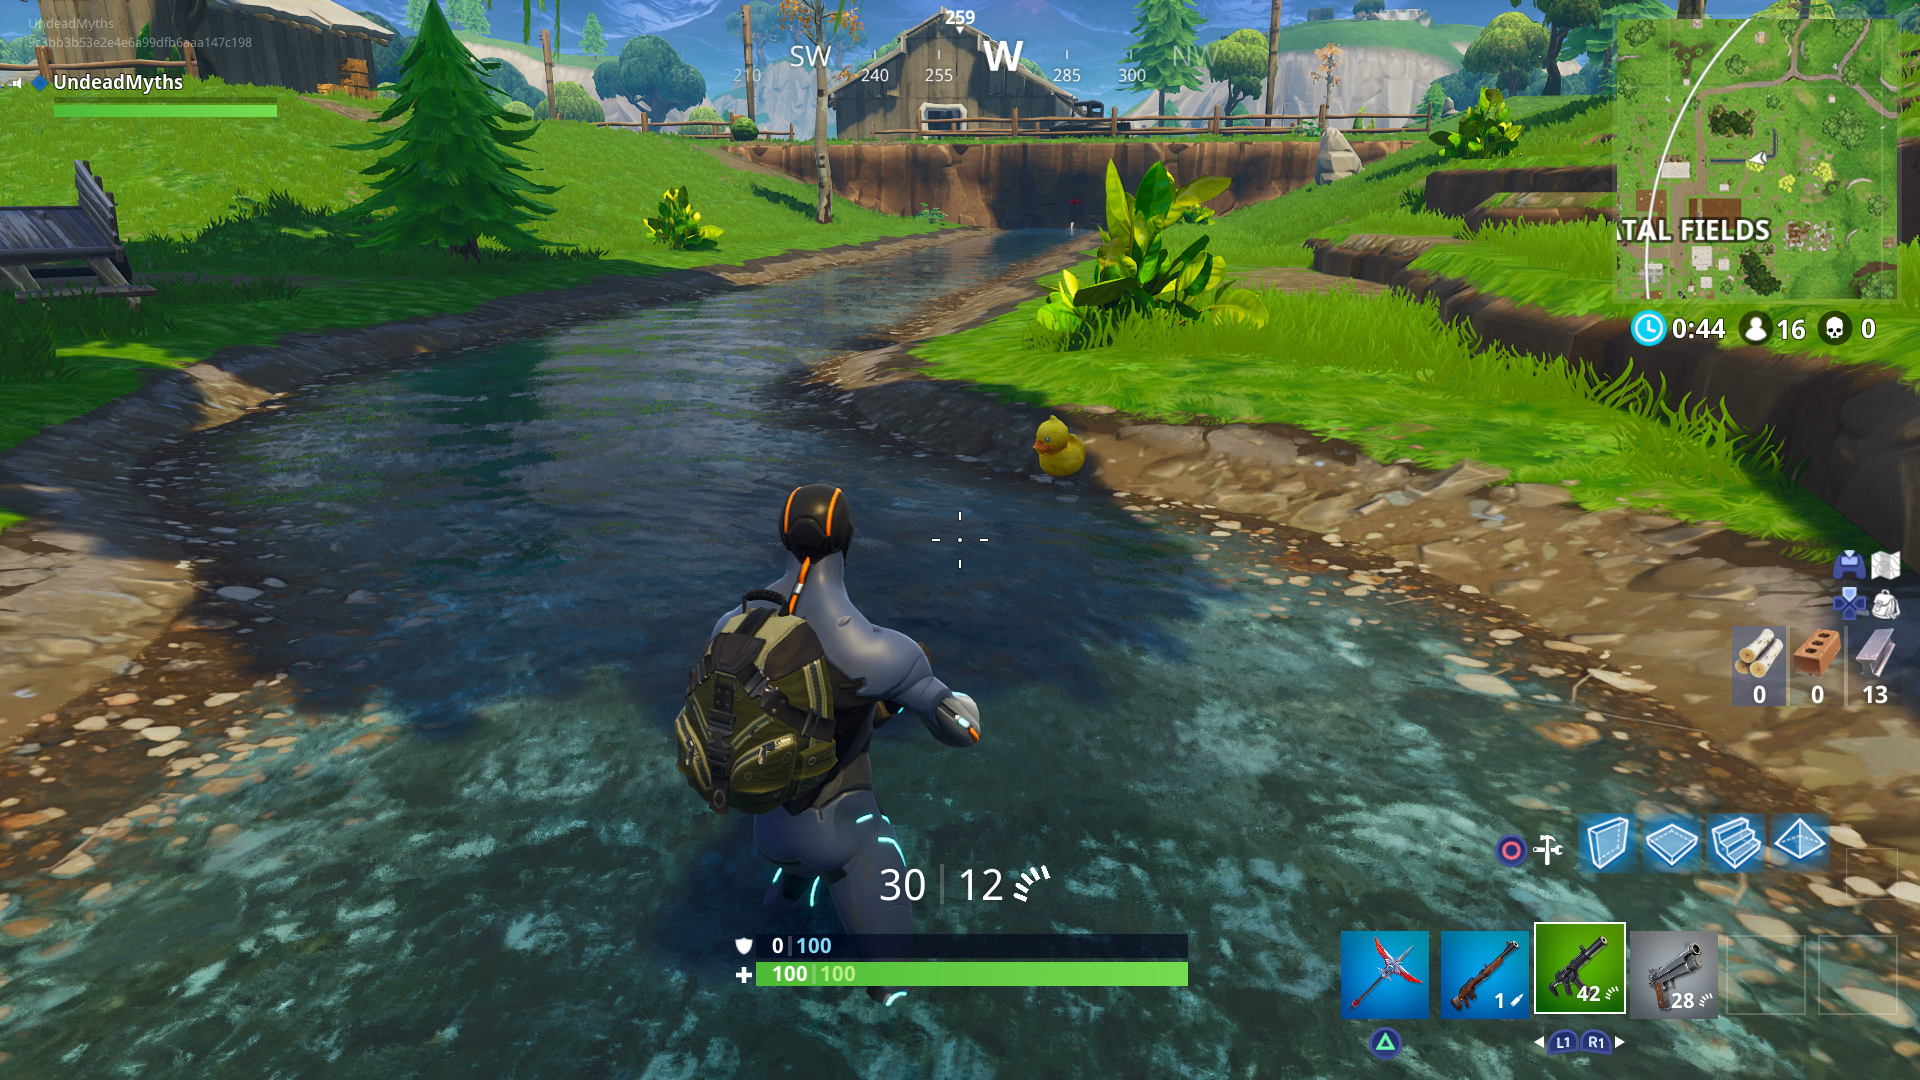 Fortnite Rubber Duckies Locations Where To Find The